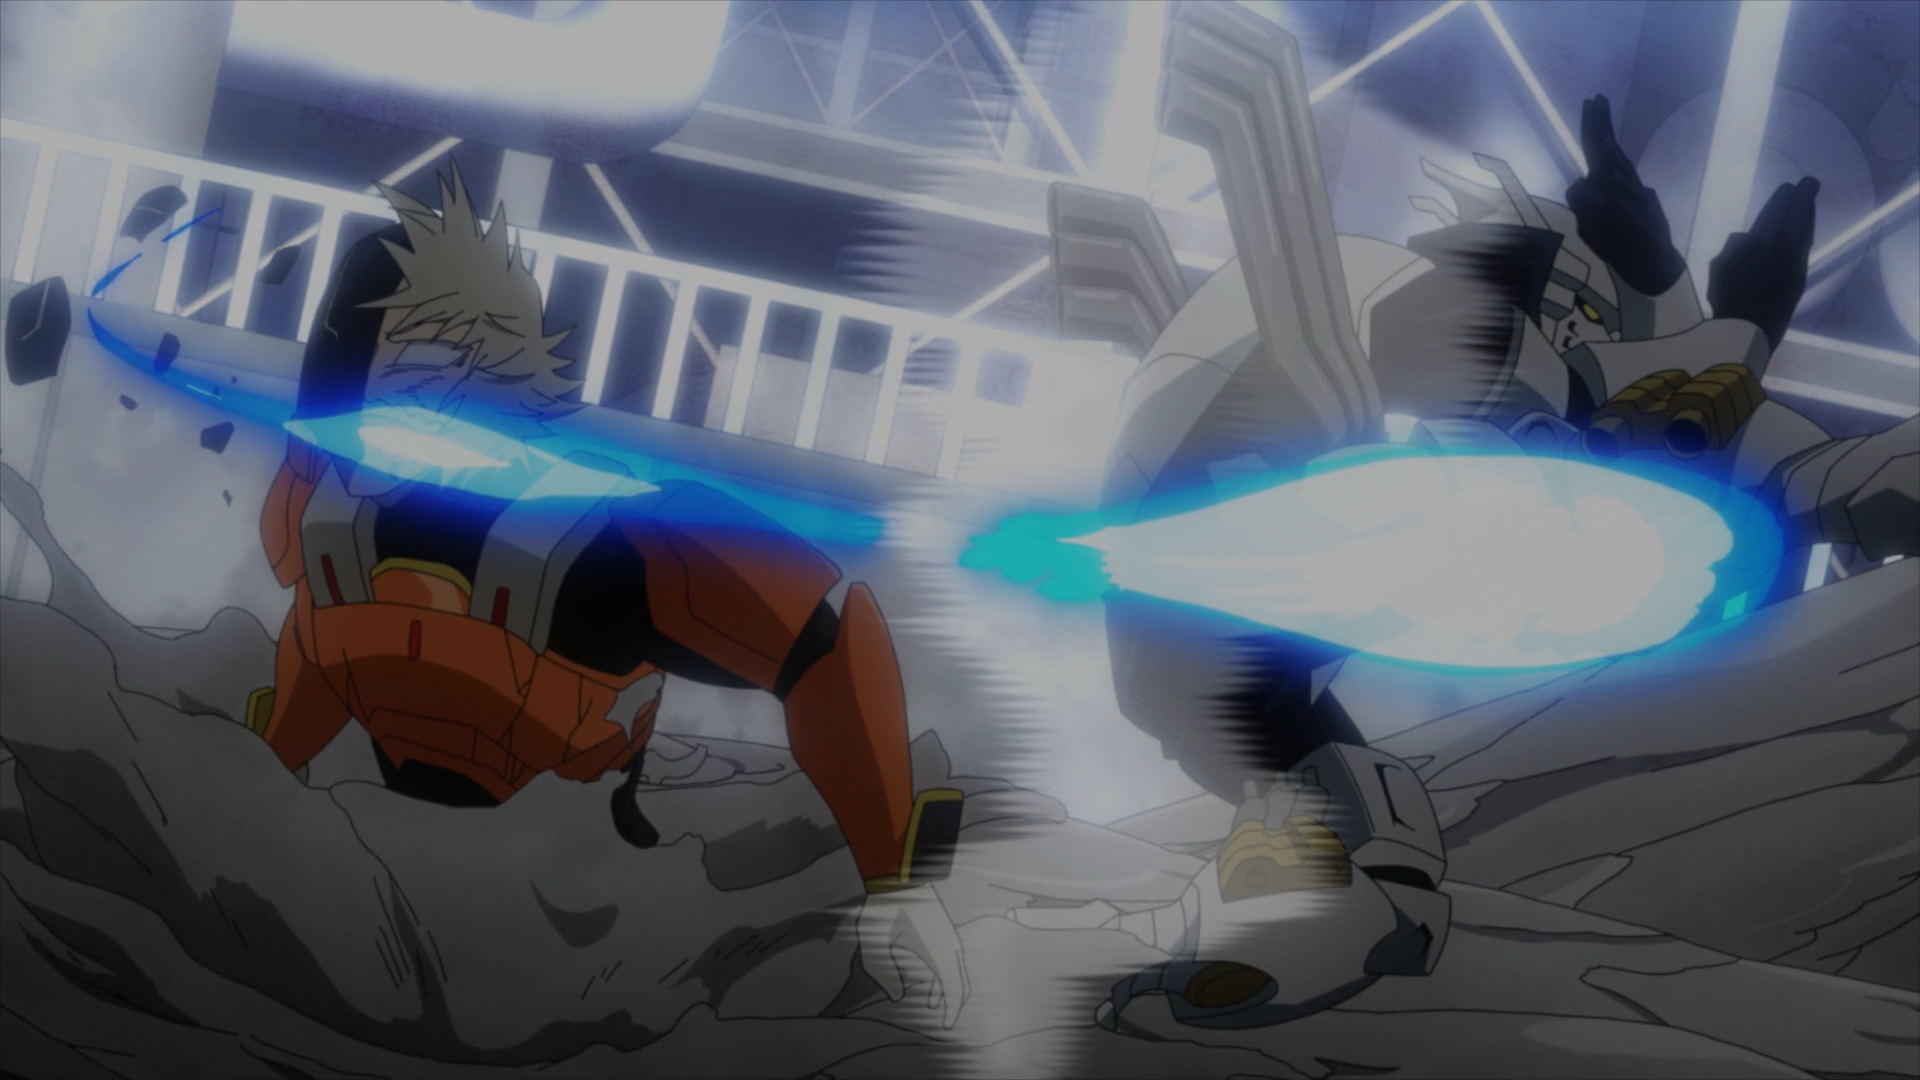 Iida lands an epic kick to Juzo's head just in time to safe Shoto.